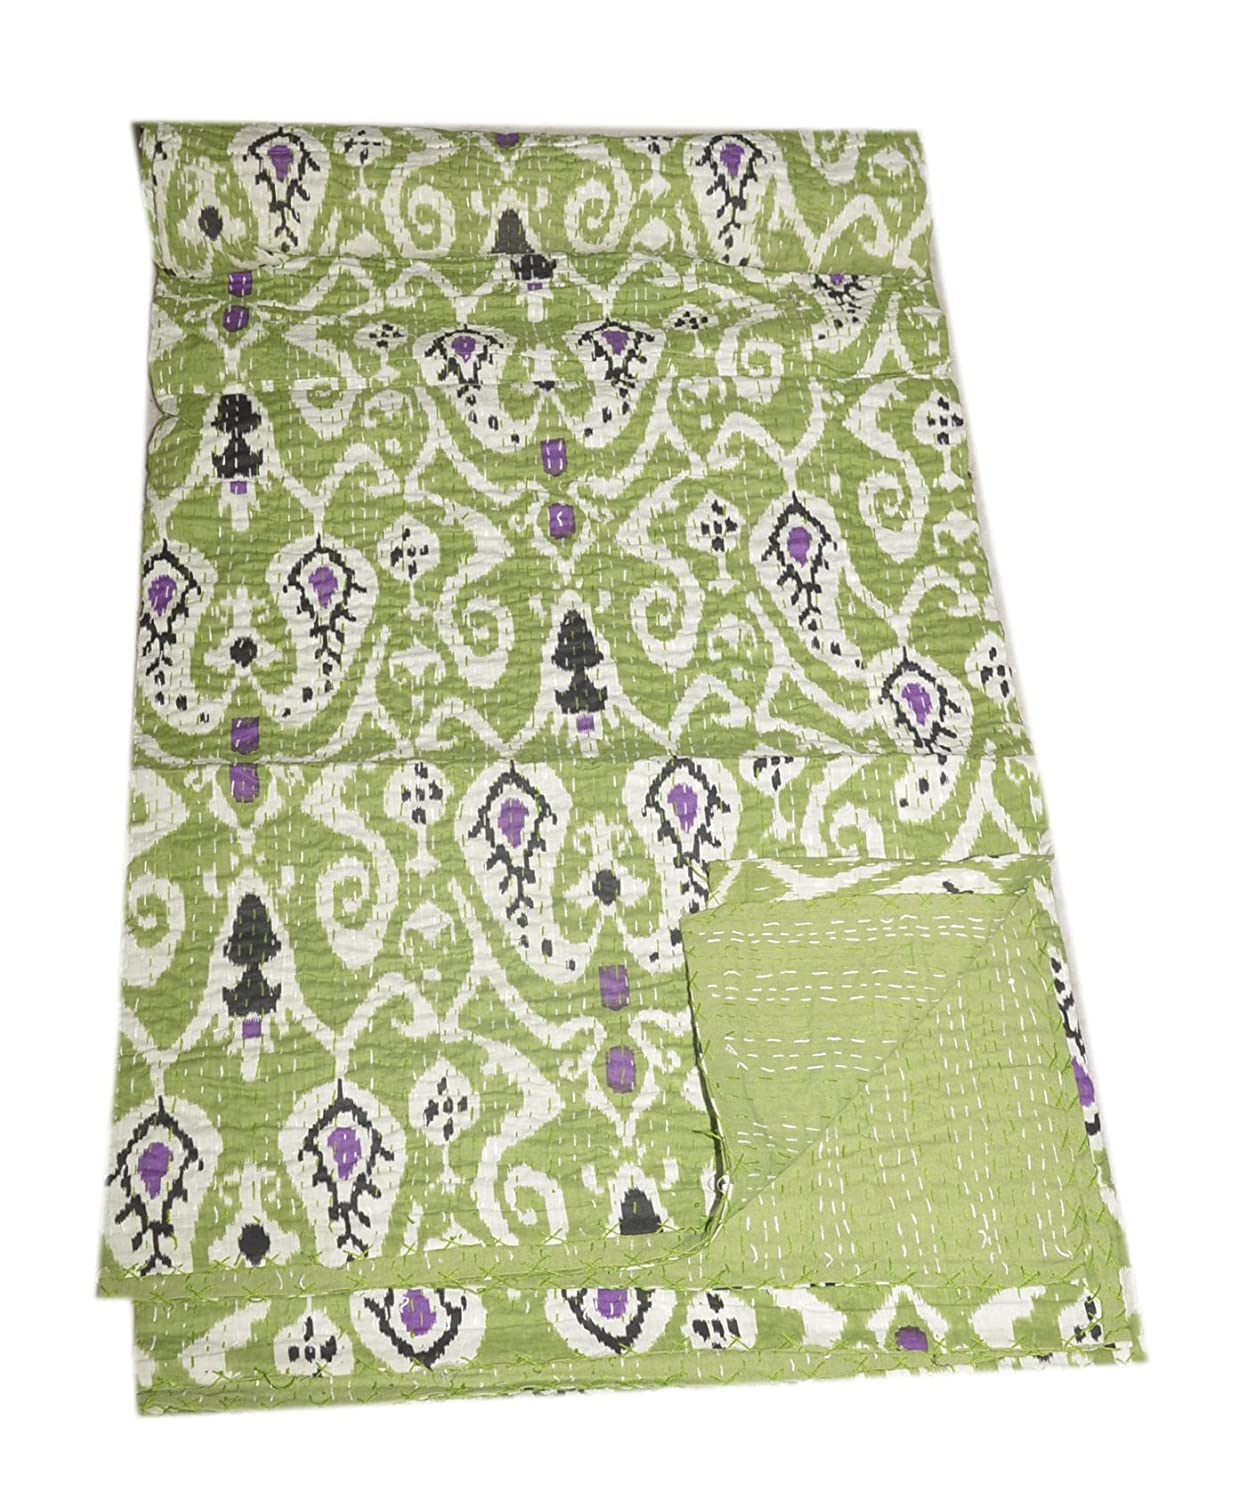 Tribal Asian Textiles Cotton Hand Block Ikat Print Queen Size Kantha Bed Cover Bed Throw Indian Quilt B0719VF7S9